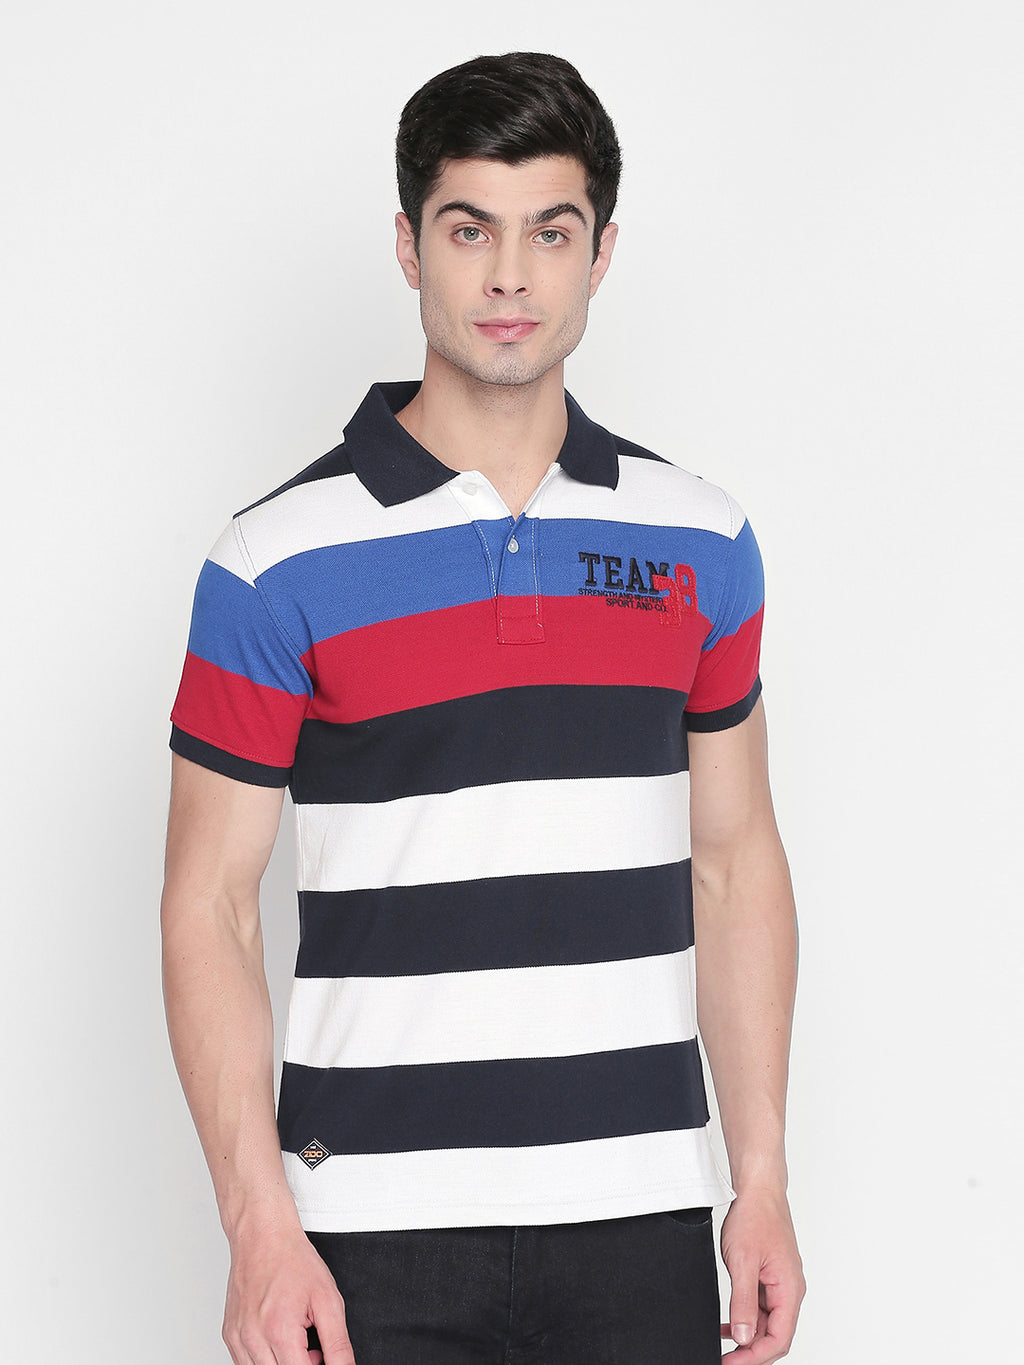 ZIDO Regular Fit Cotton Blend Striped T-Shirt for Men's TSHSTP313